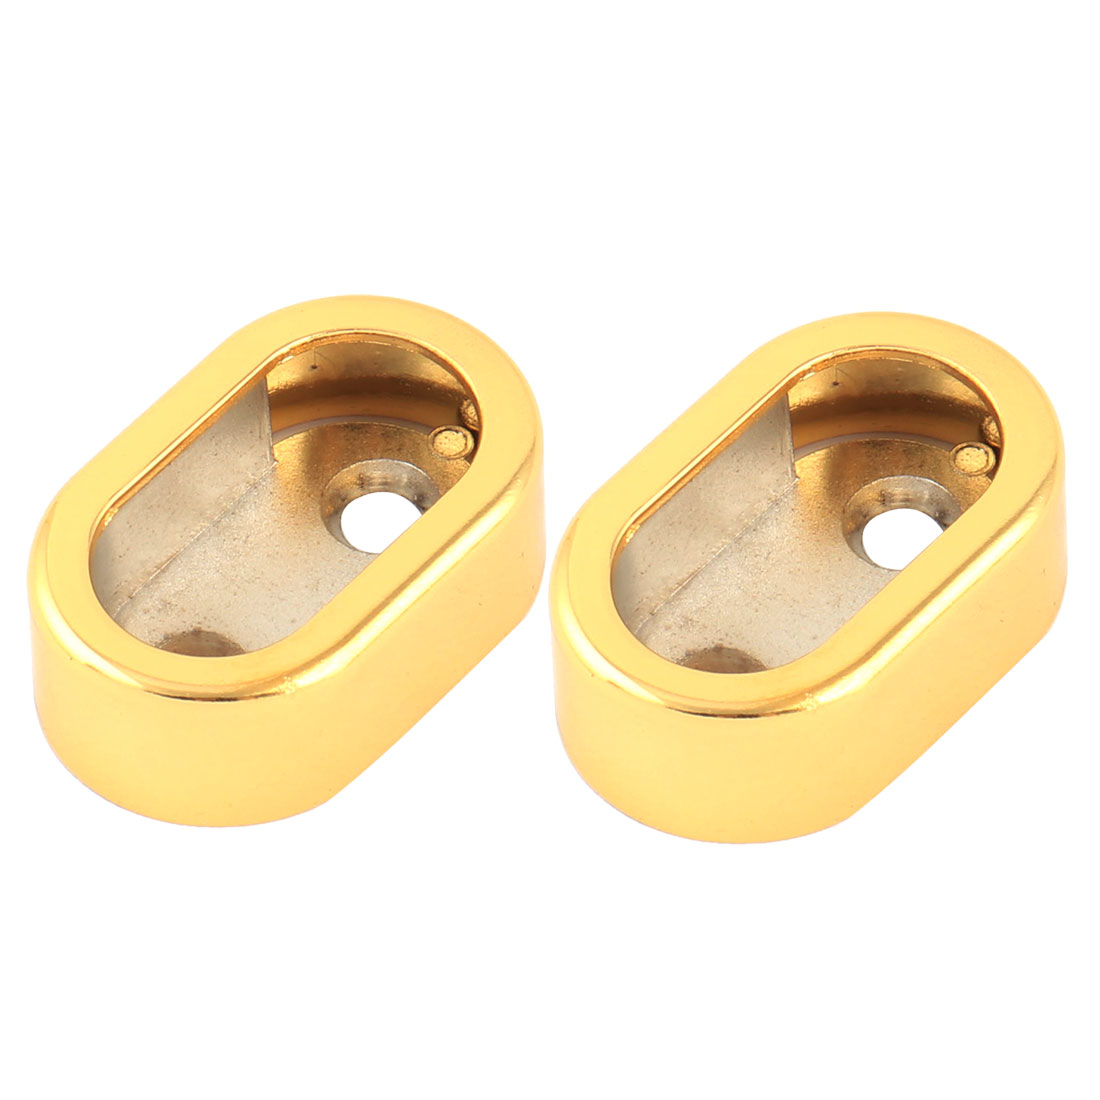 Home Metal Garment Clothes Closet Rod Holder End Support Socket Bracket Gold Tone 2pcs